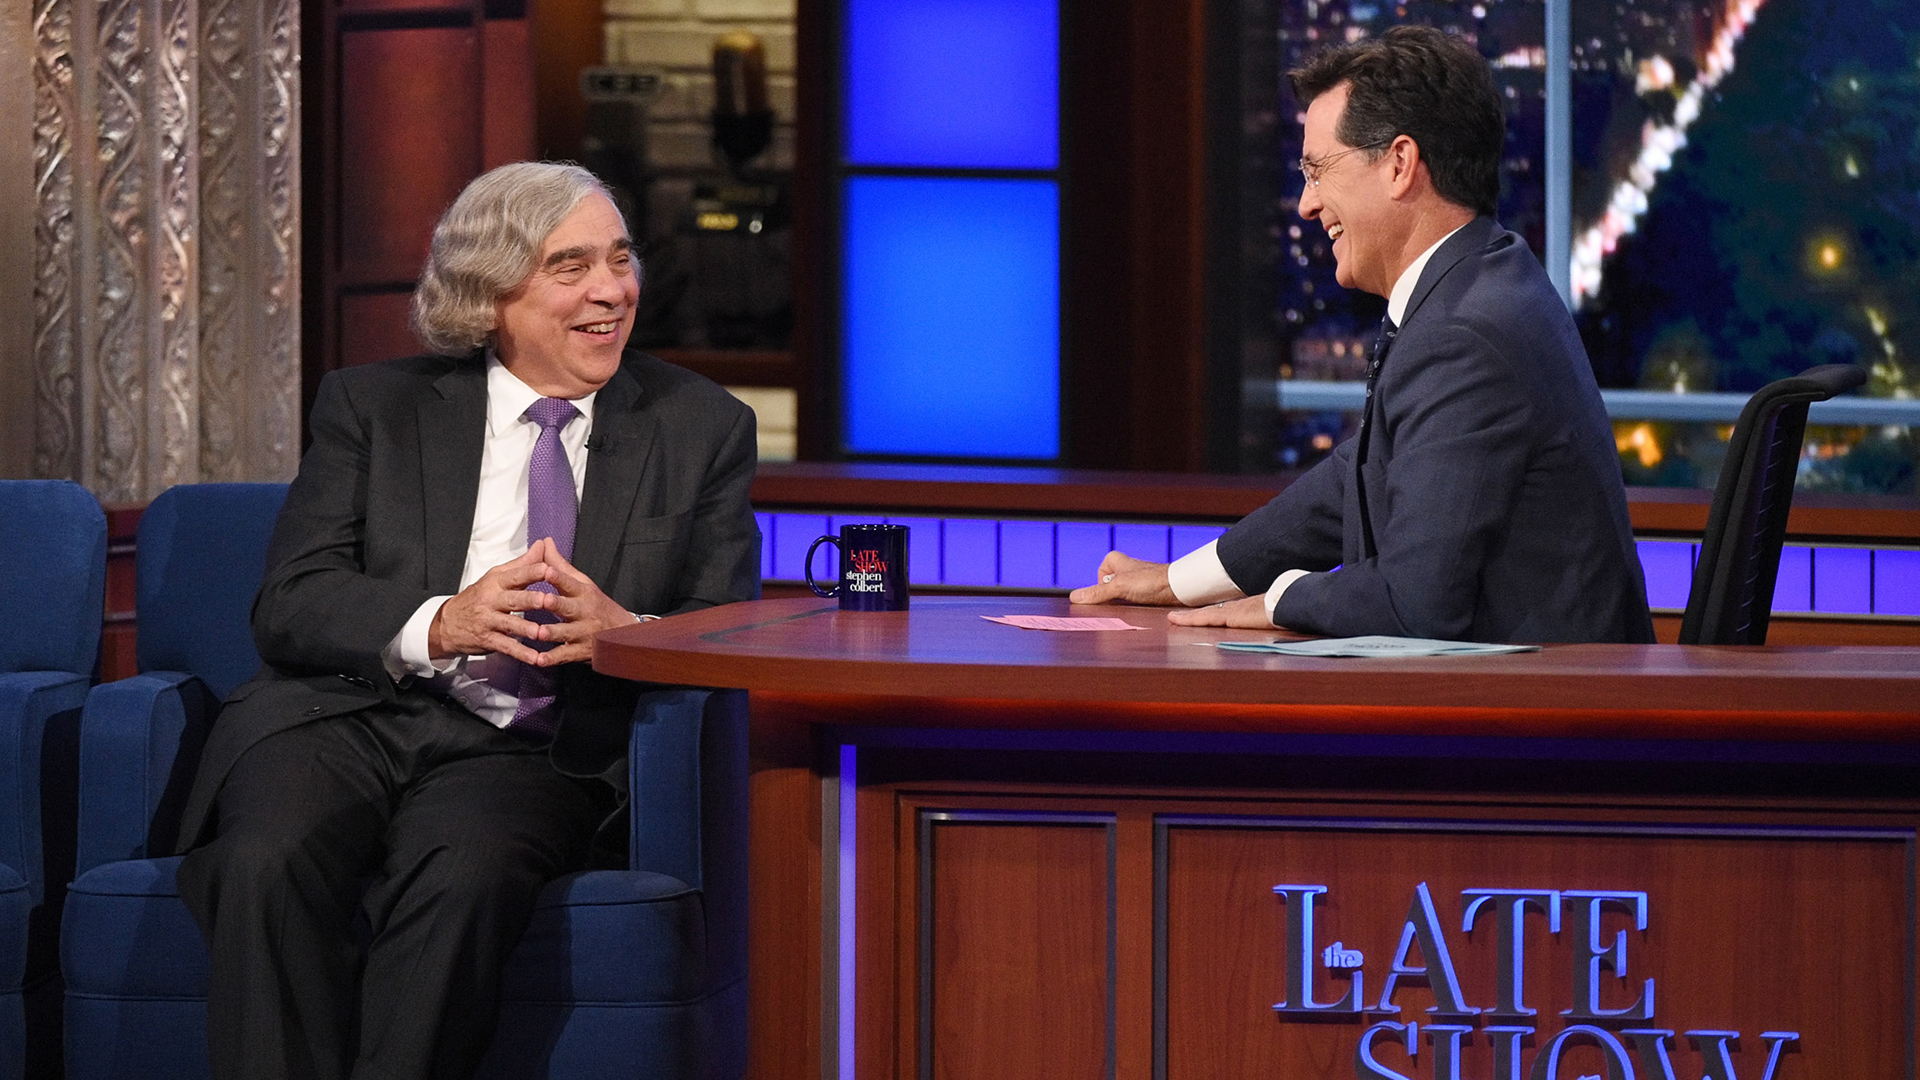 Dr. Ernest Moniz and Stephen Colbert